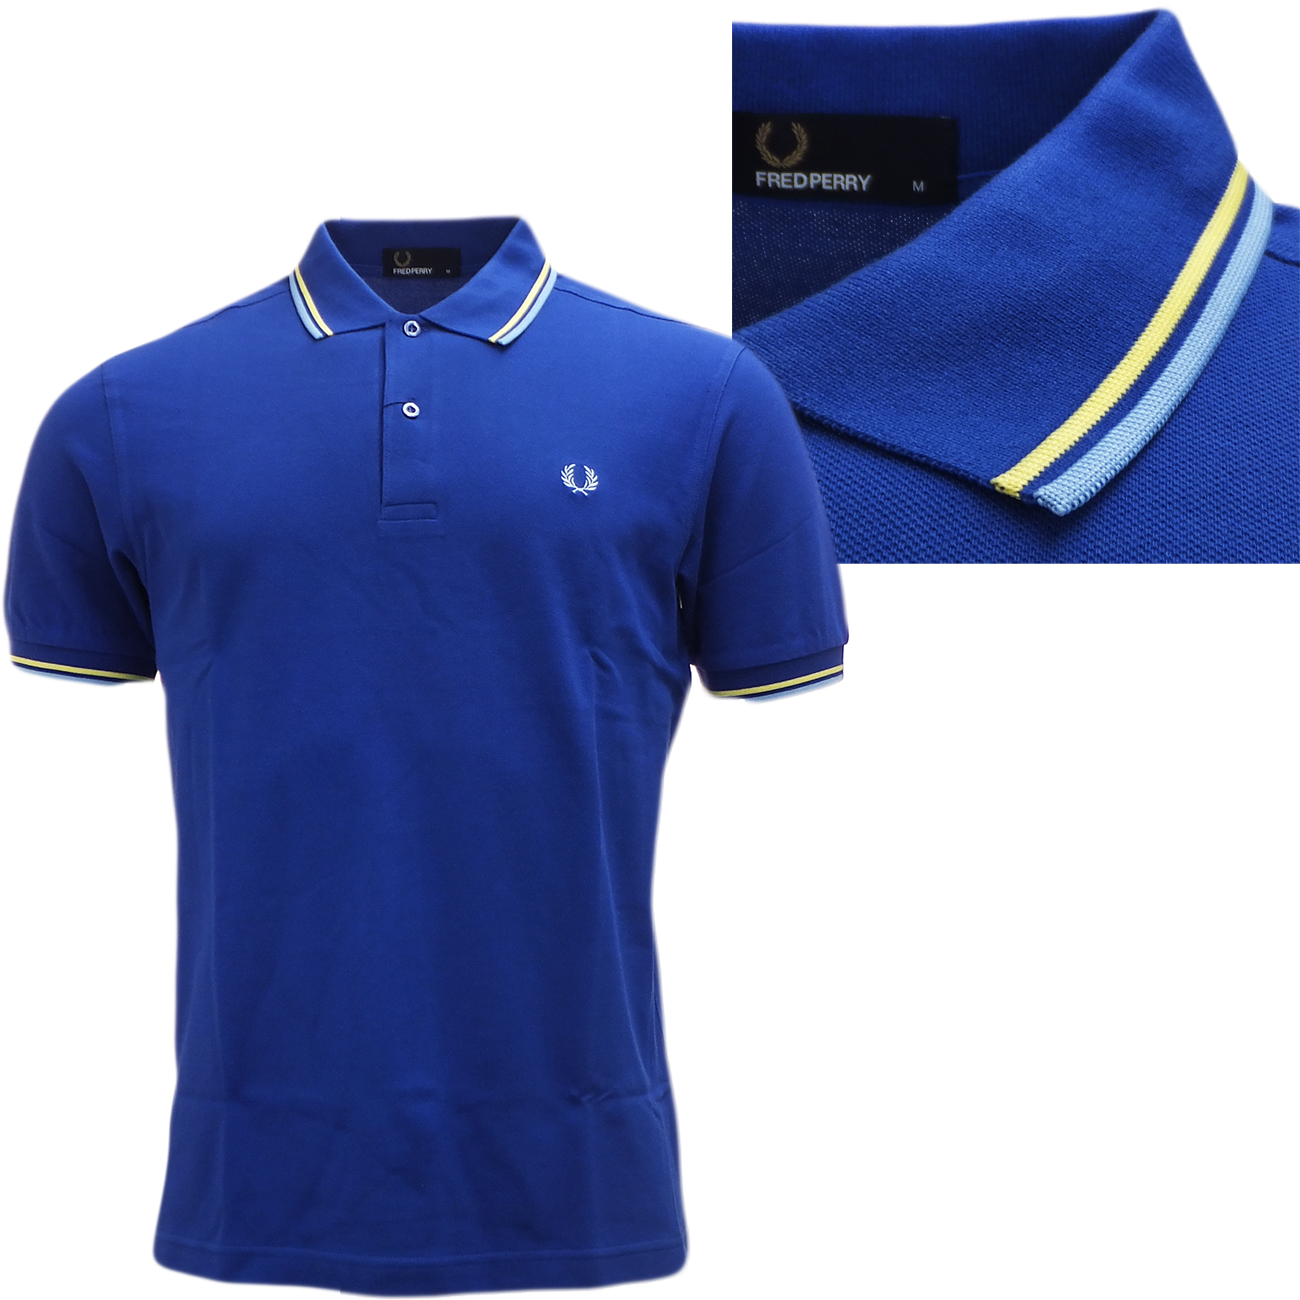 fred perry polo shirt original m1200 standard fit polos royal blue ebay. Black Bedroom Furniture Sets. Home Design Ideas